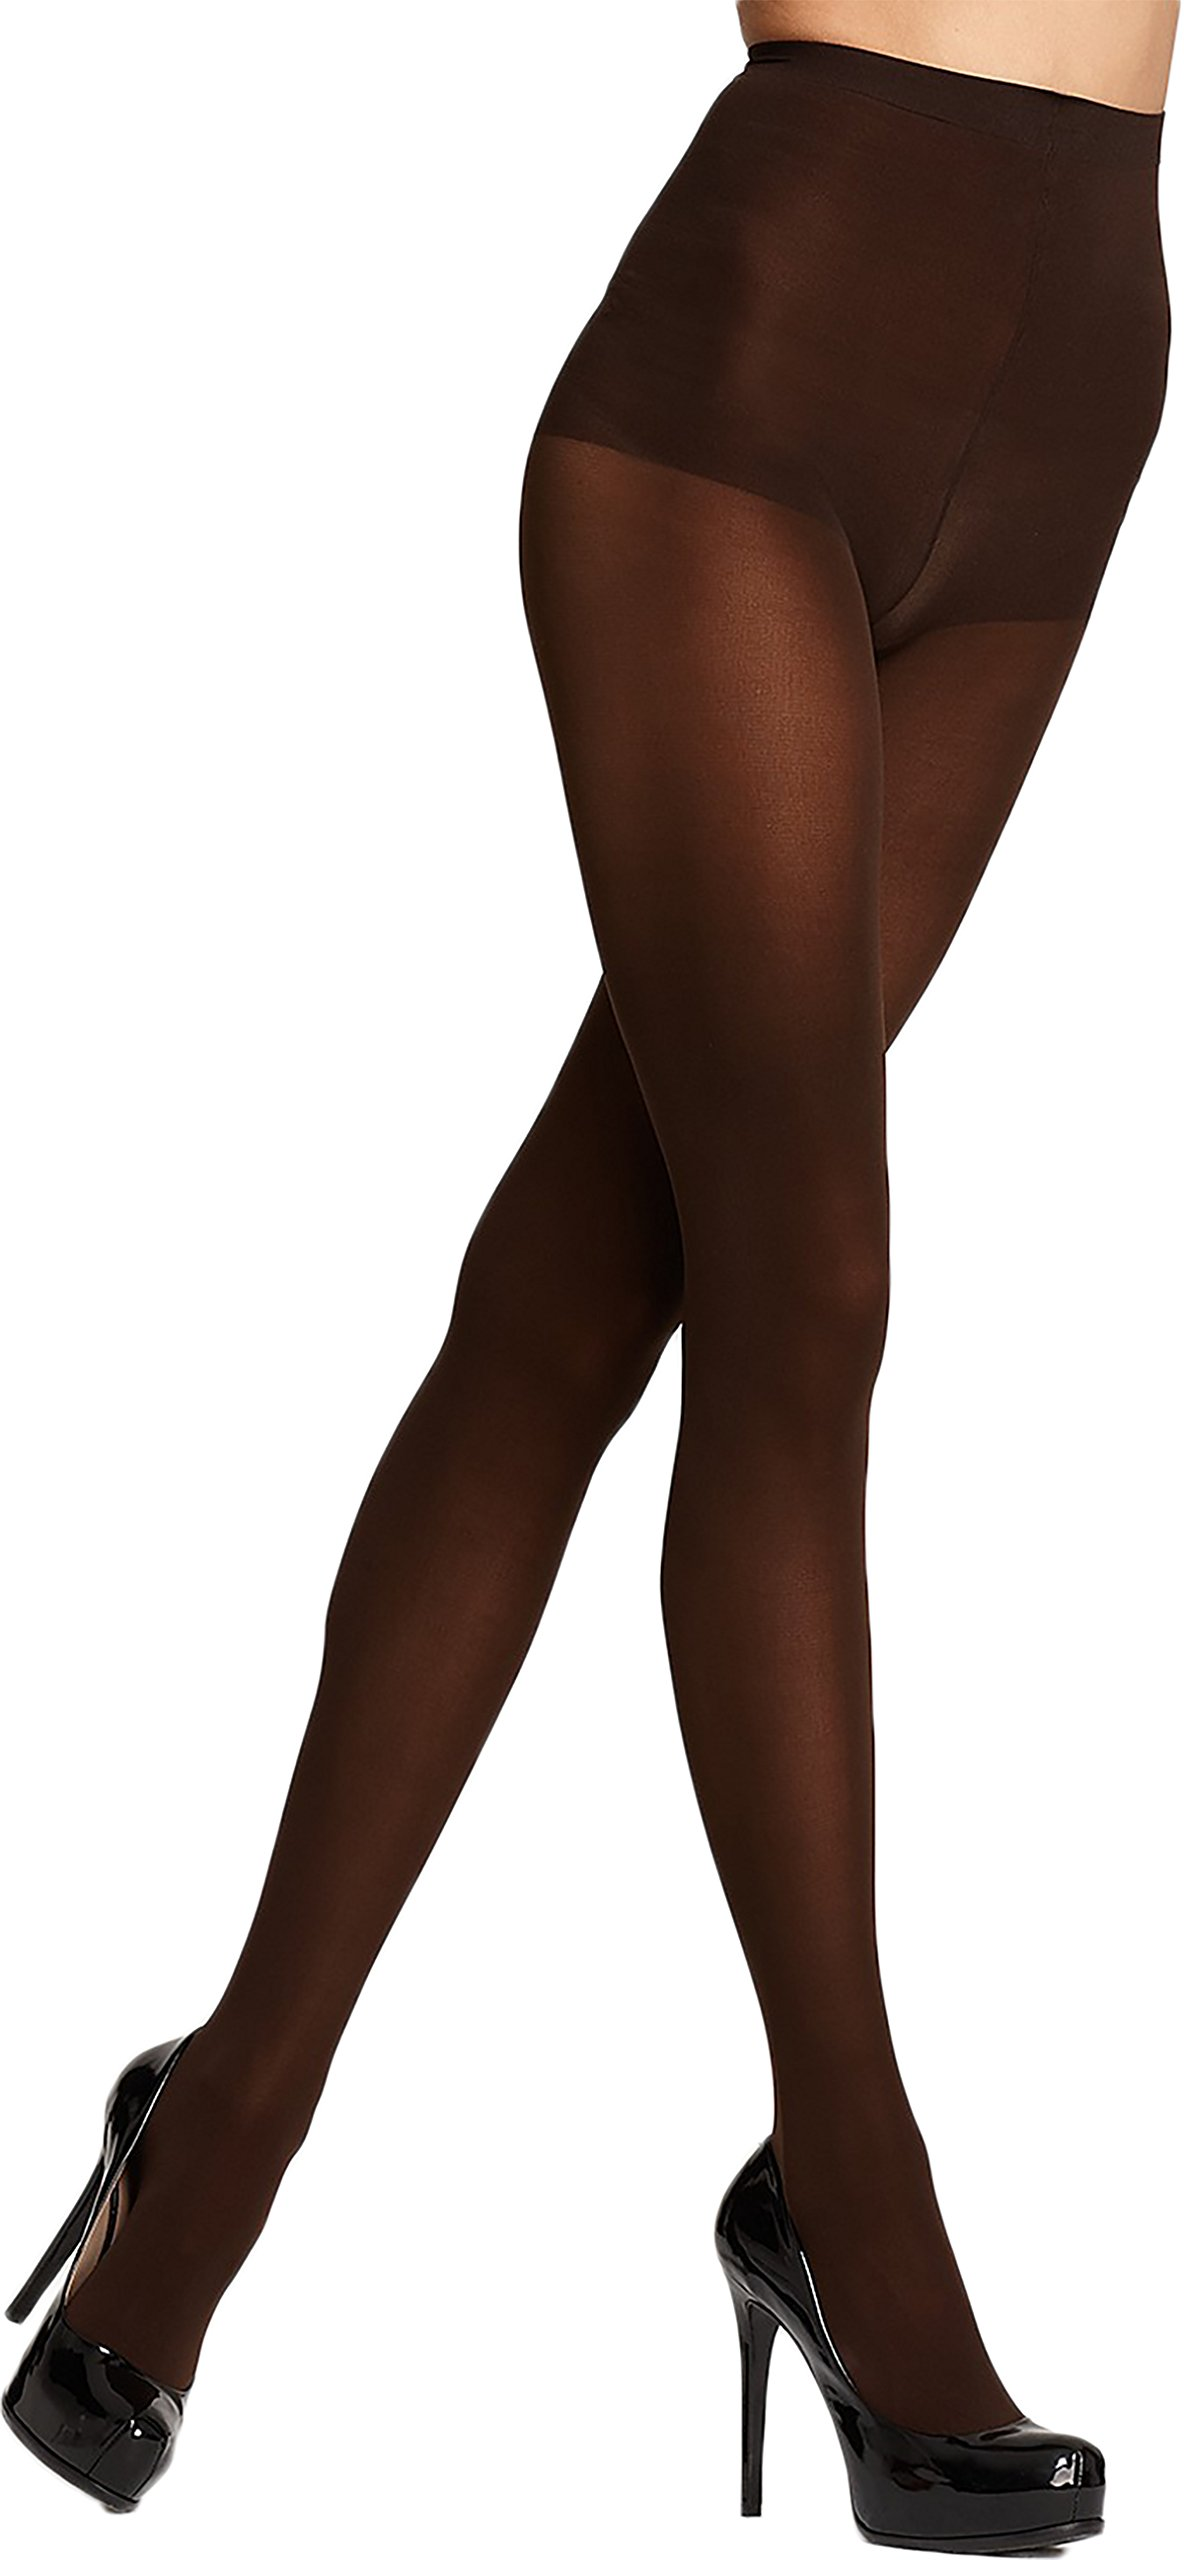 DKNY Hosiery Control Top Opaque Tights (412) Petite Plus/Chocolate Brown